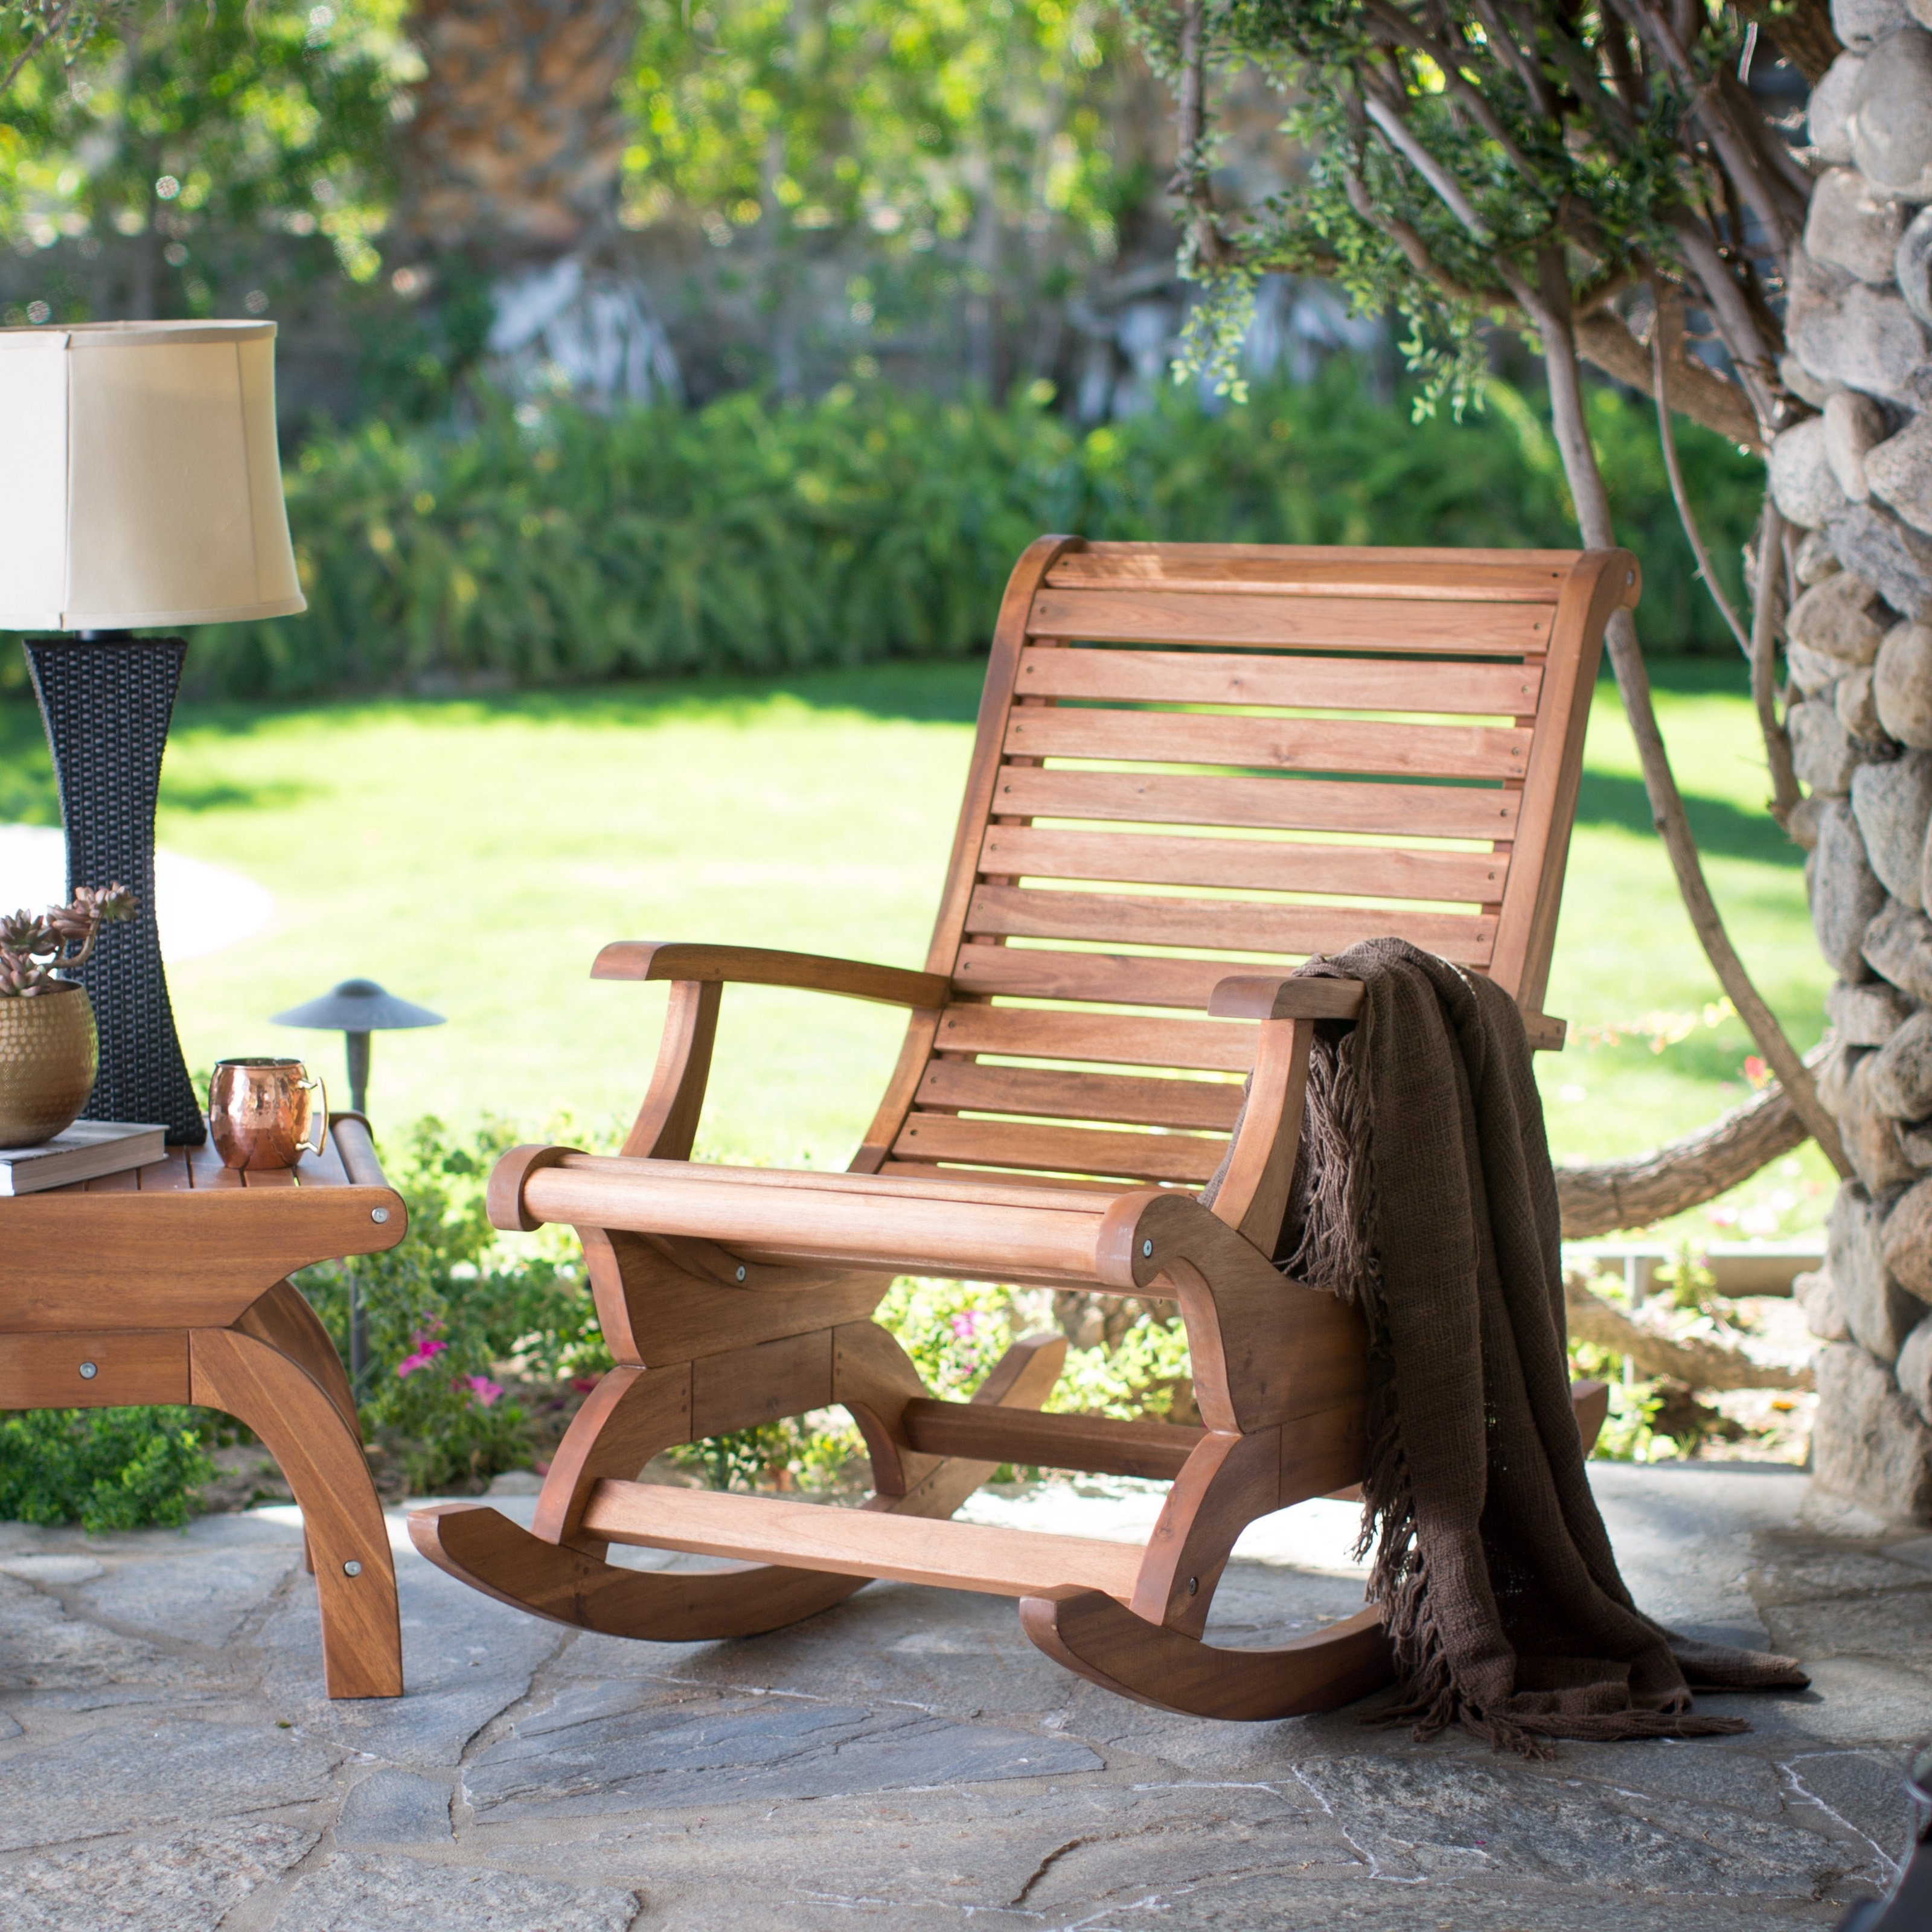 Belham Living Avondale Oversized Outdoor Rocking Chair – Natural With Regard To Outdoor Rocking Chairs With Table (View 2 of 15)